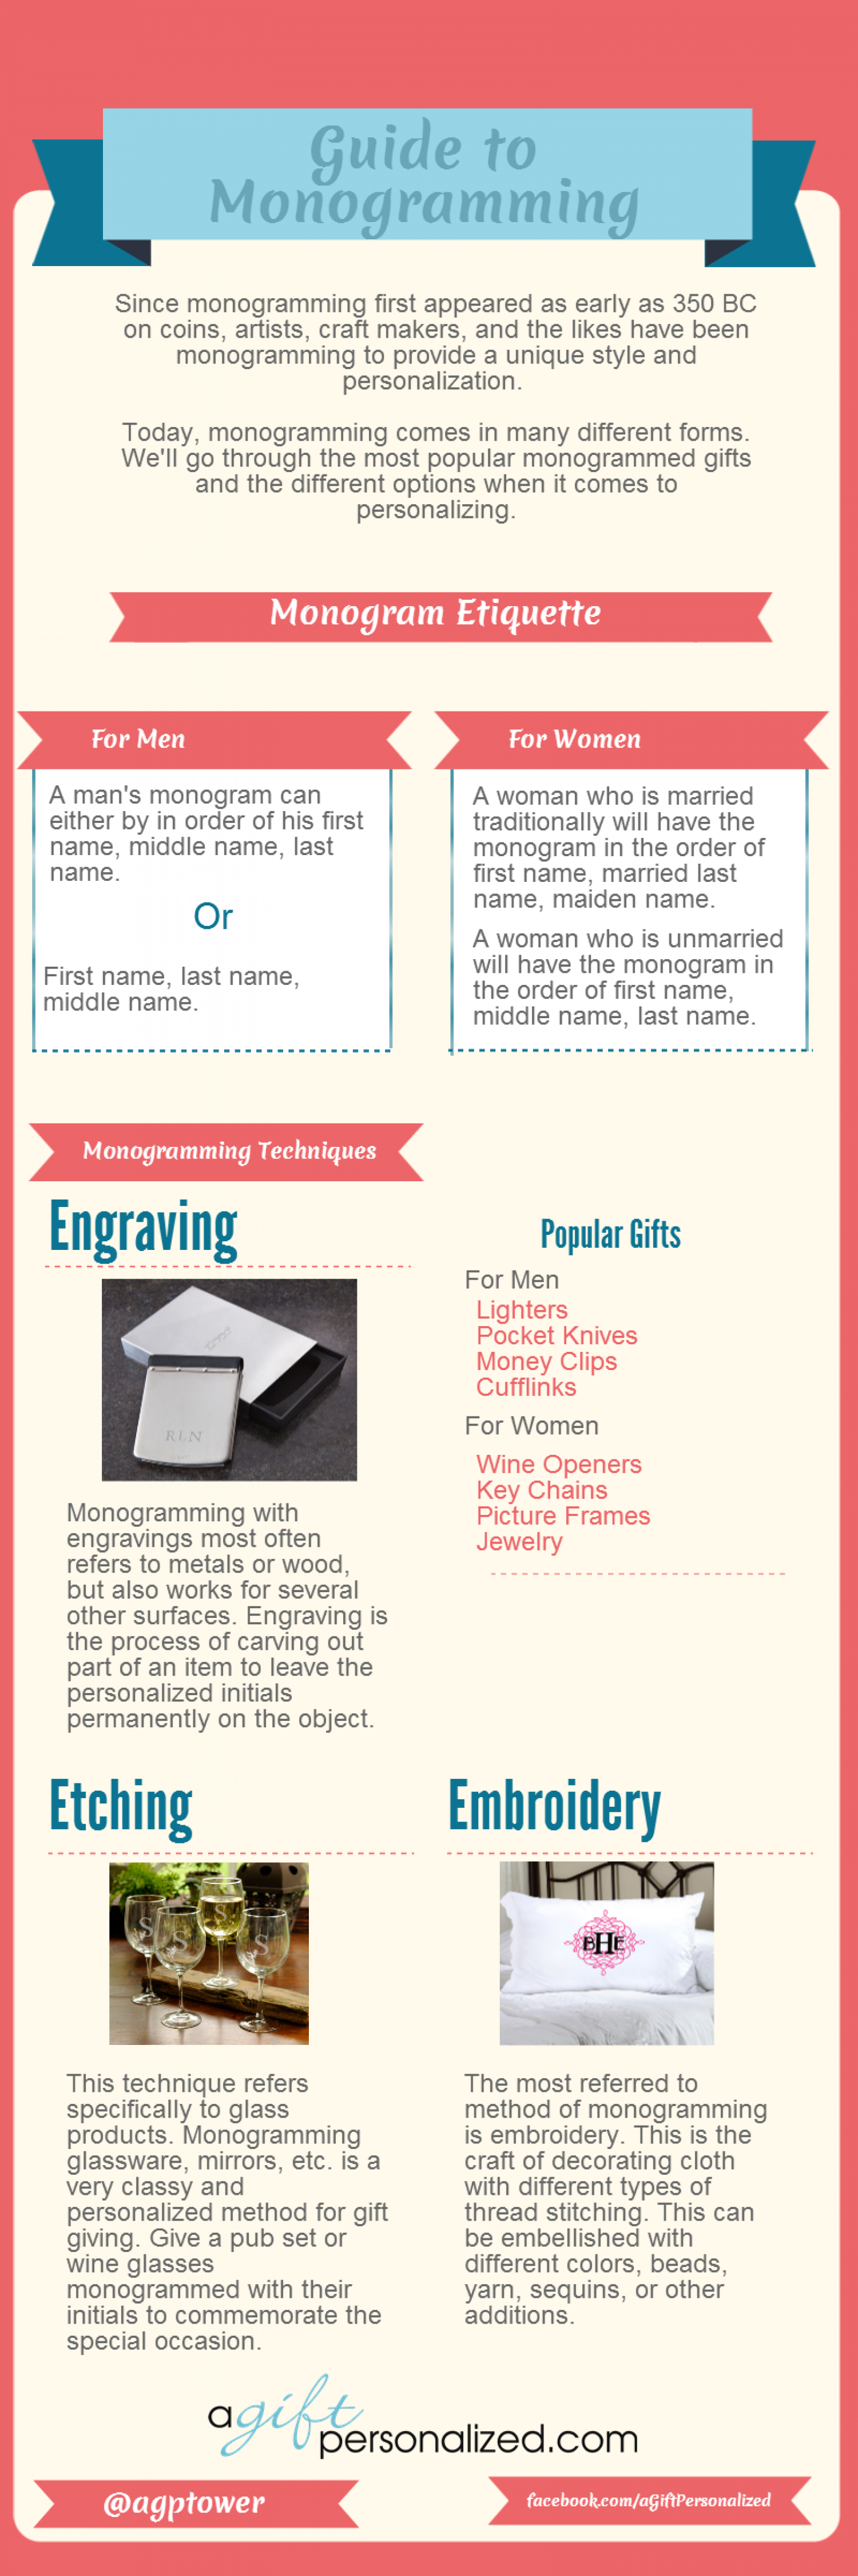 Guide to Monogramming Infographic